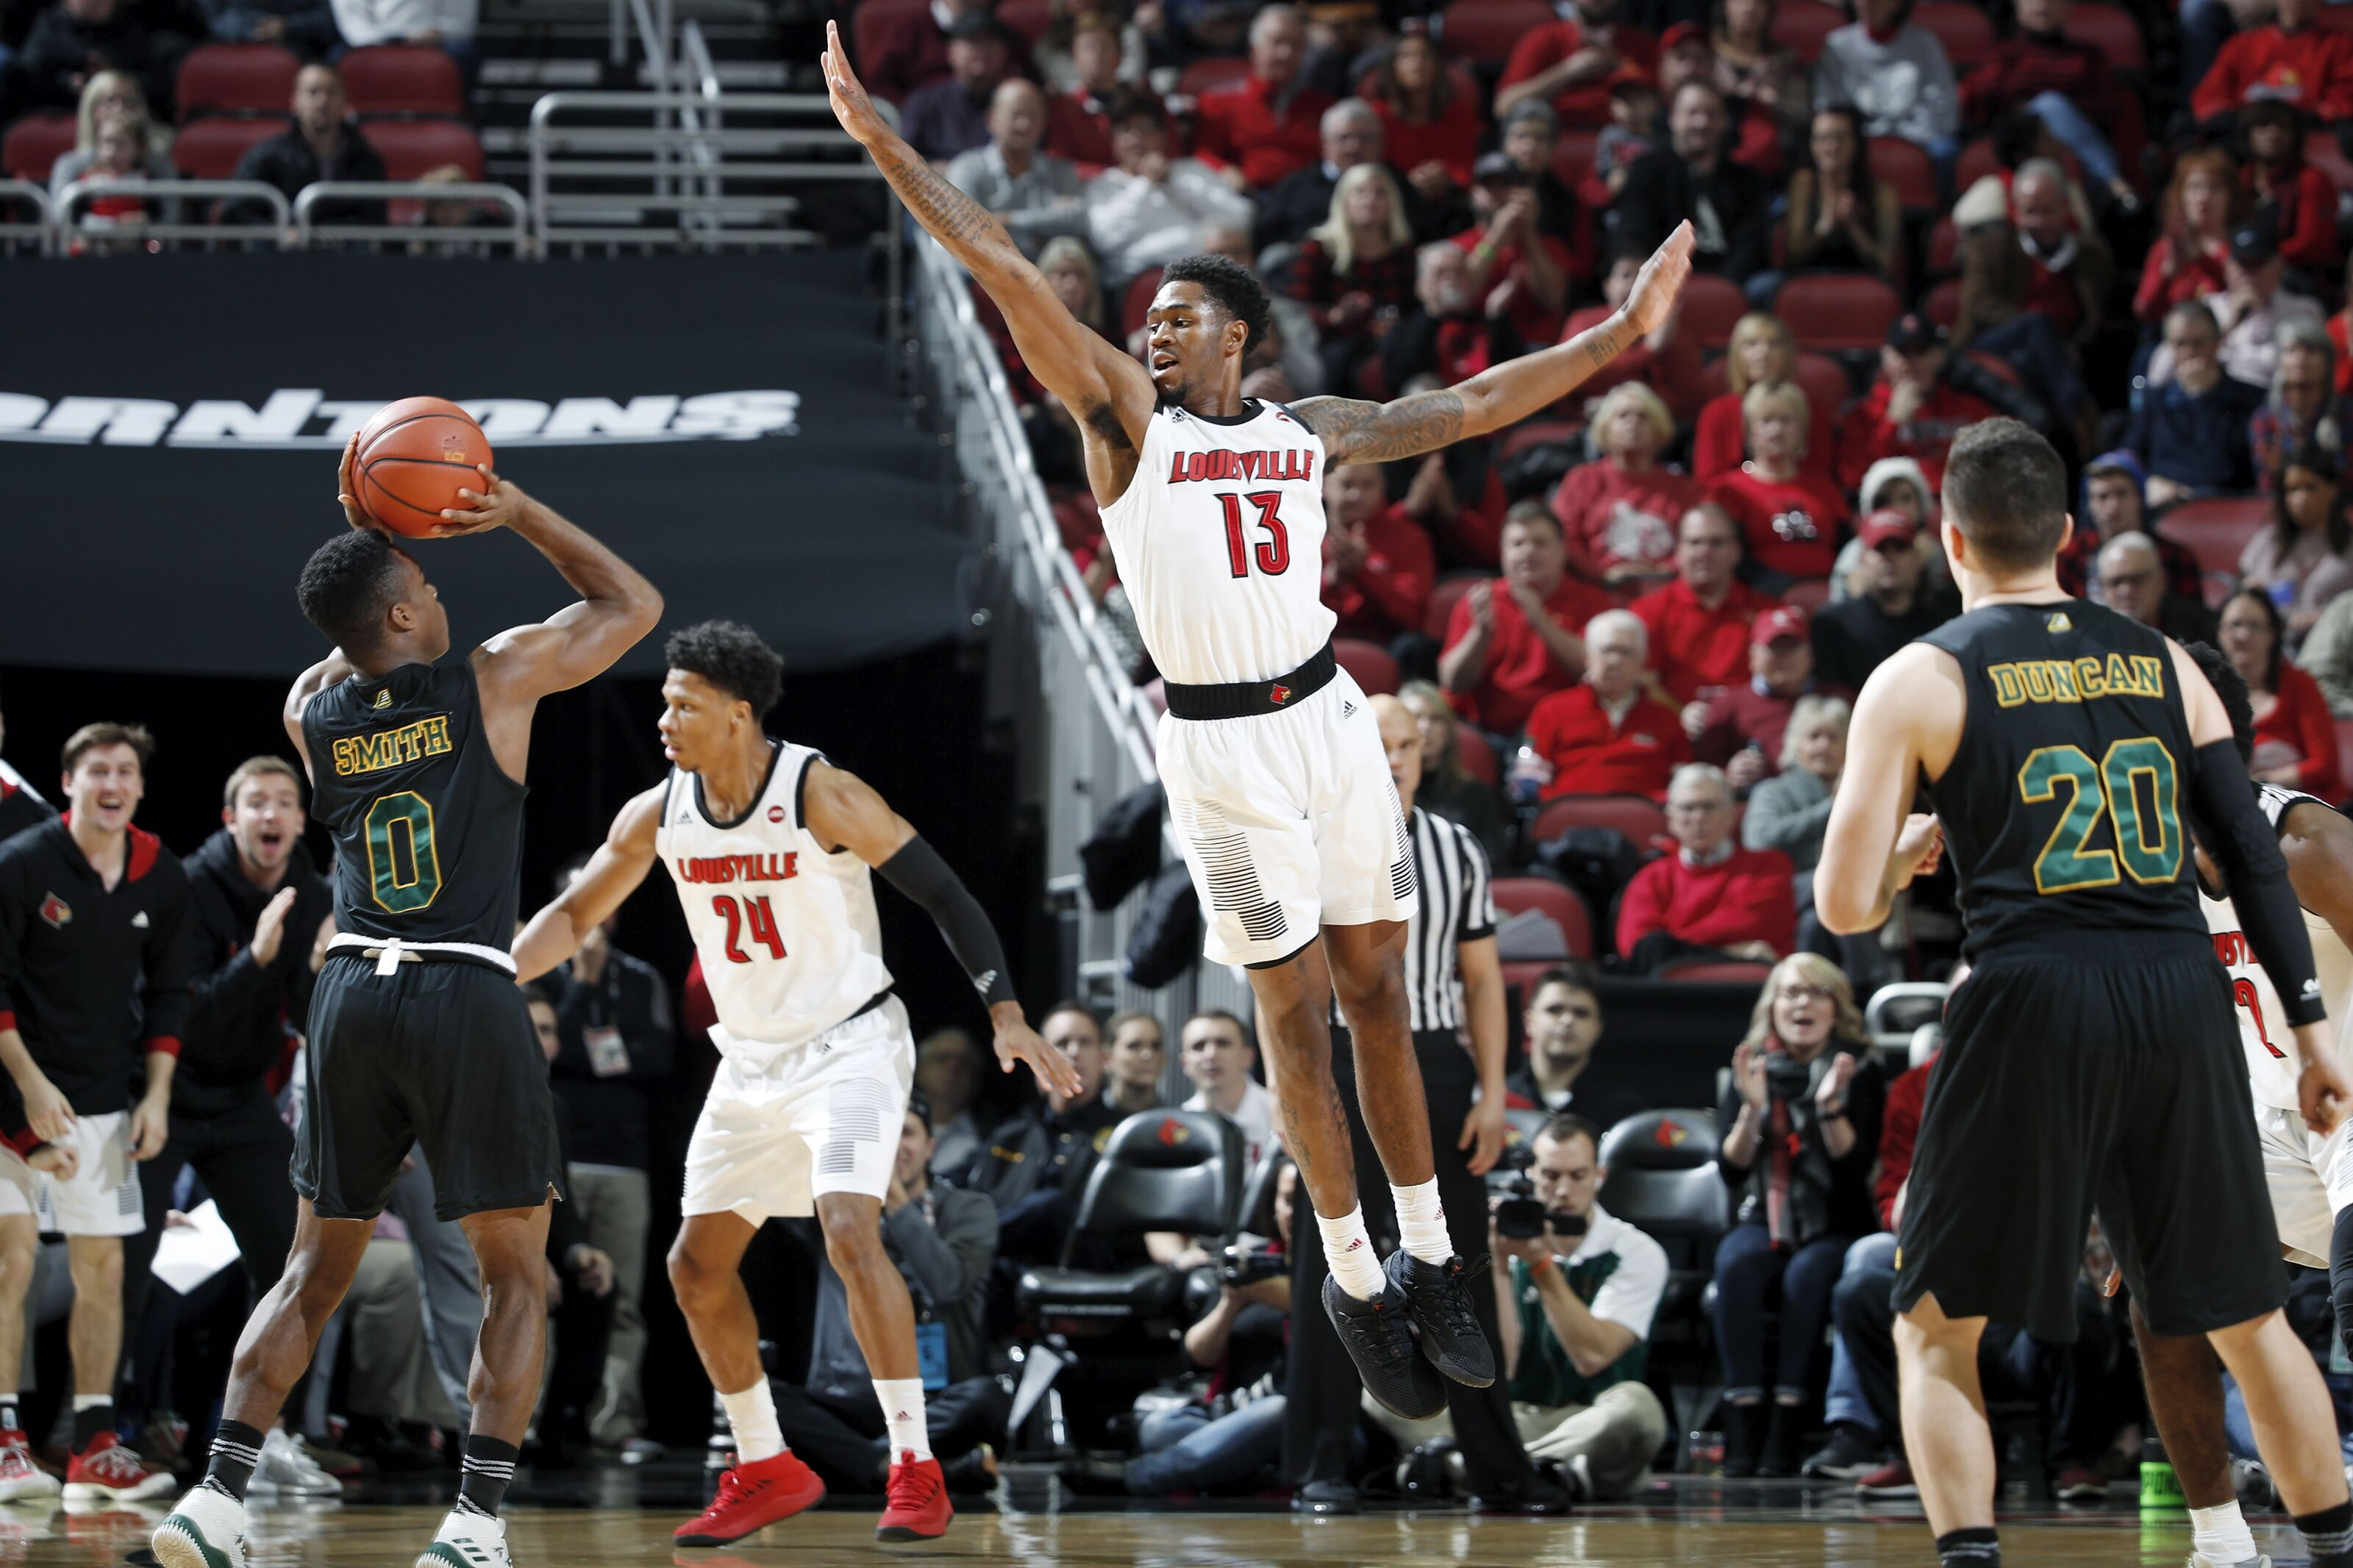 louisville basketball has toughest schedule, toughest stretch in